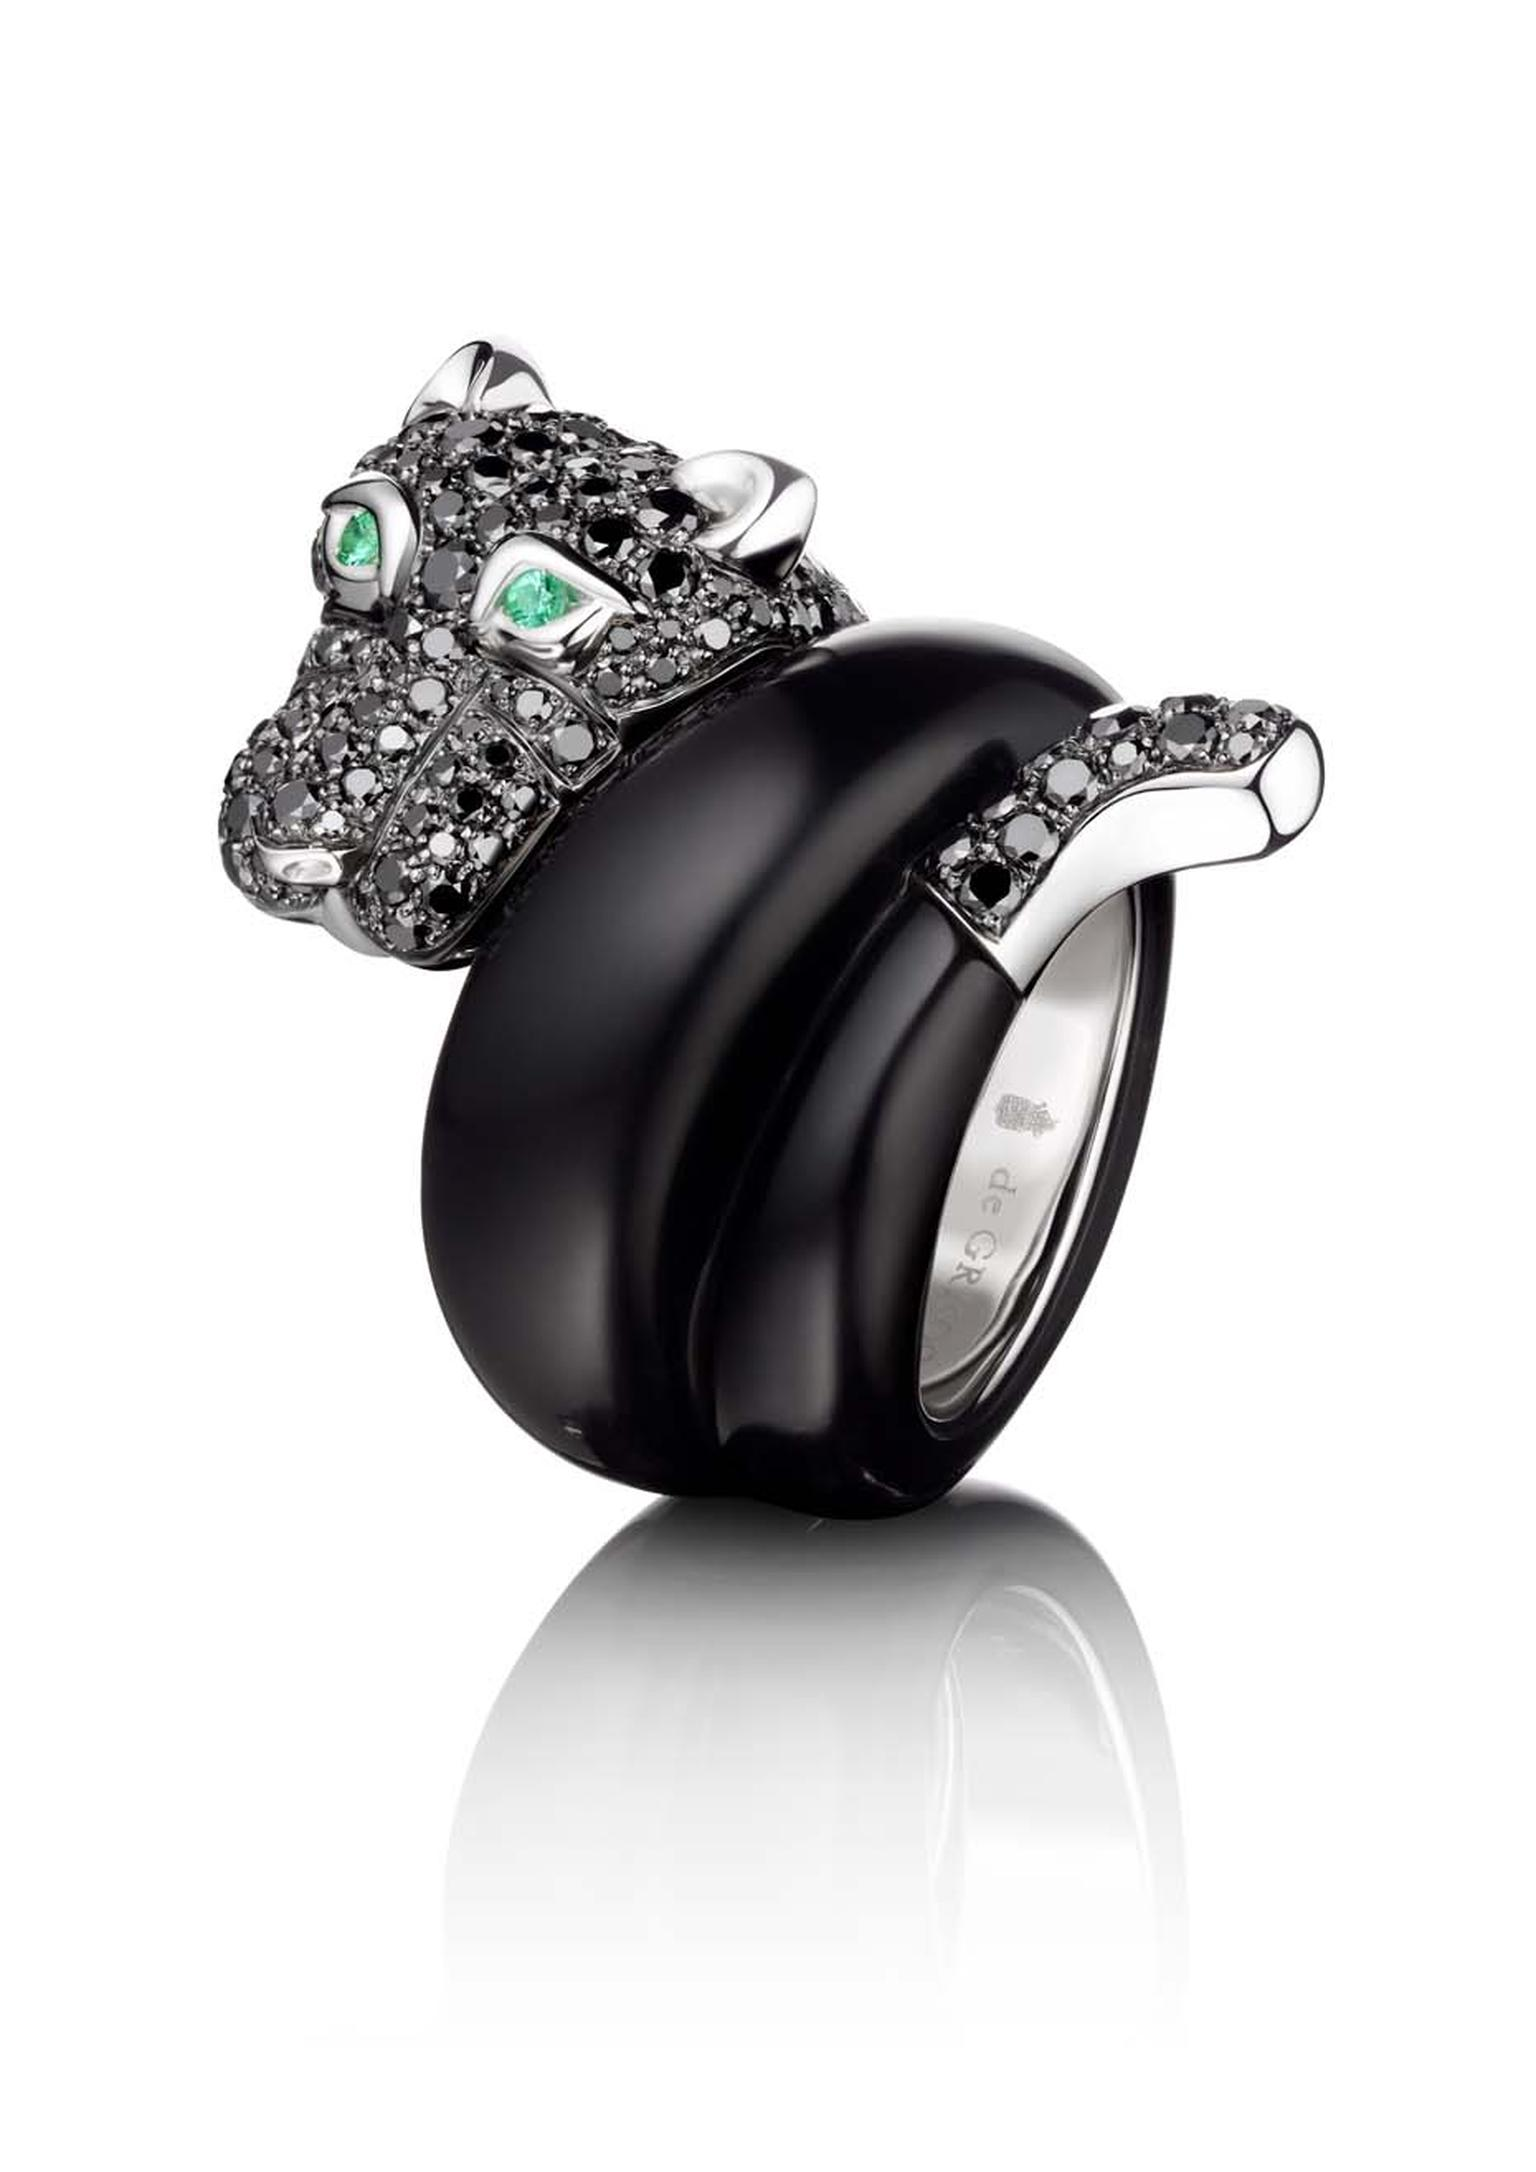 The de GRISOGONO Panther ring, with black and white diamonds, jet and emeralds, worn by Cara Delevingne to de GRISOGONO's Eden Roc party